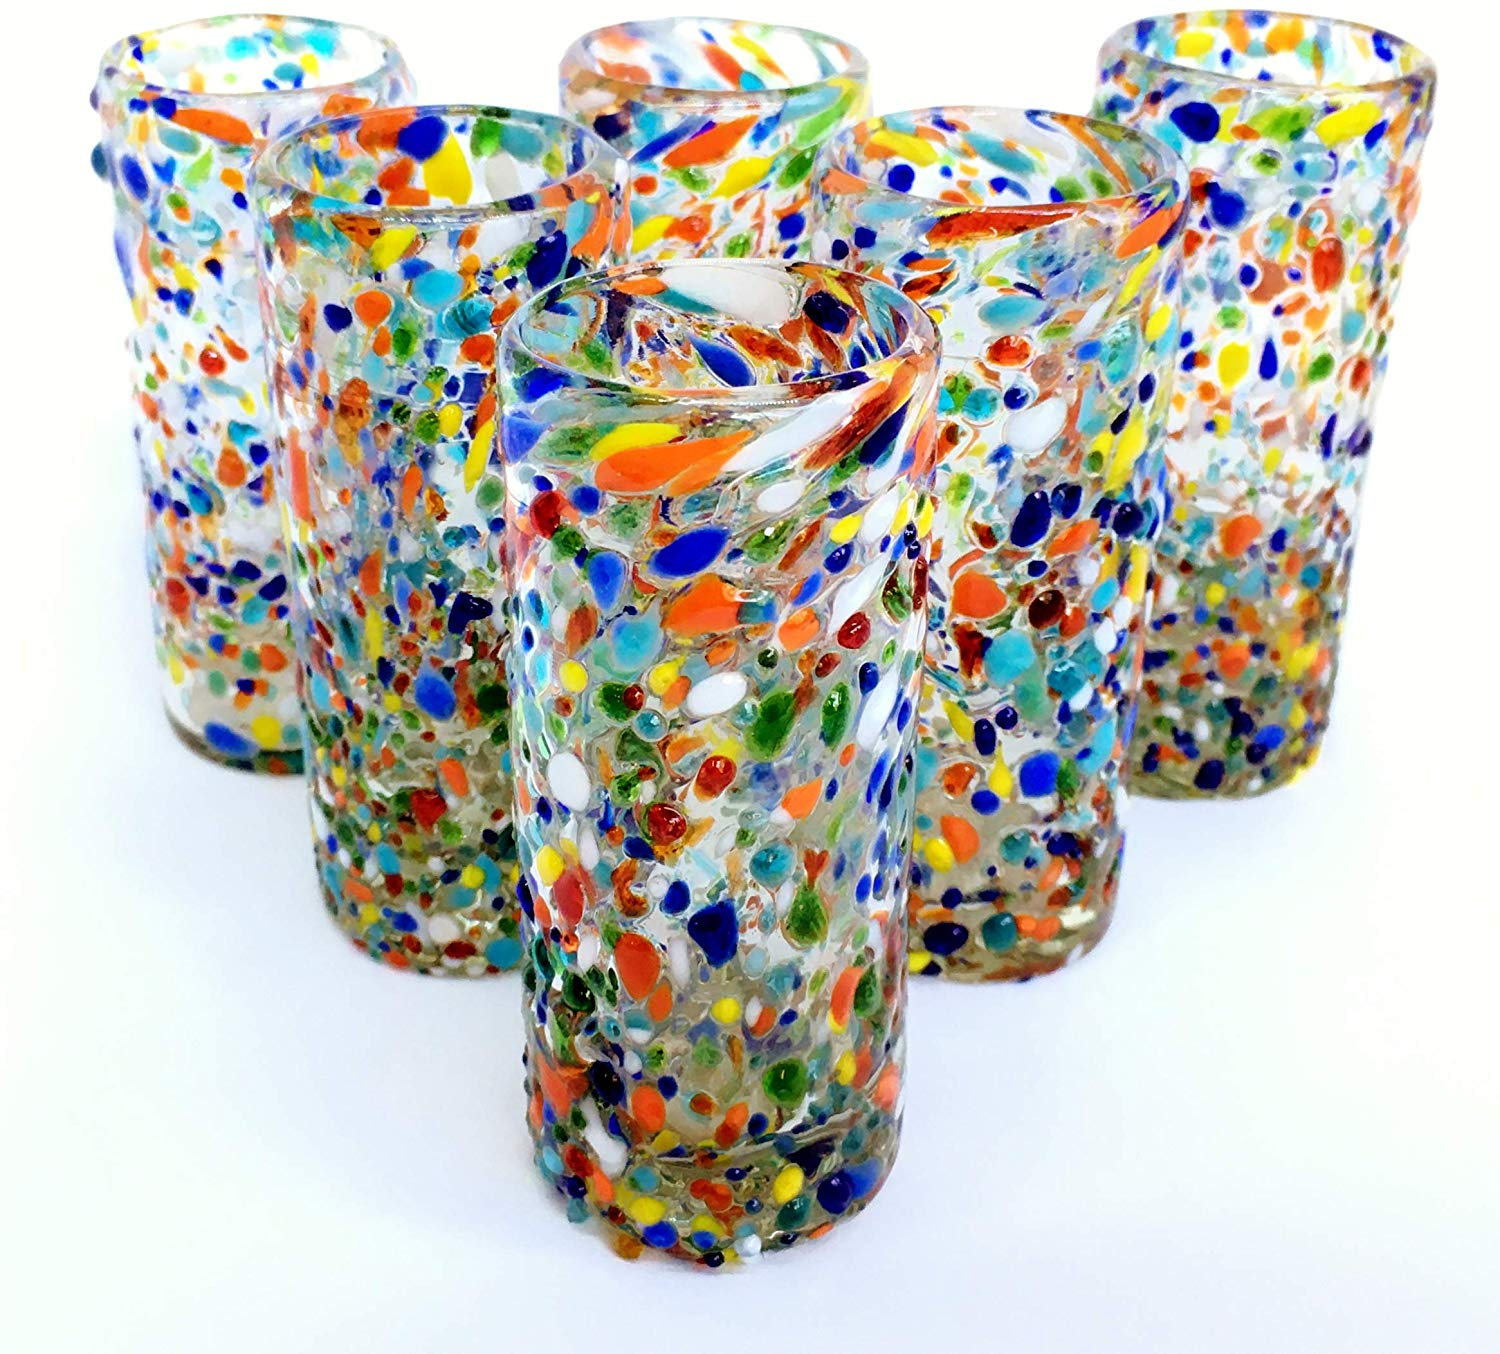 MEXICAN GLASSWARE / 'Confetti Rocks' Tequila shot glasses (set of 6) / Sip your favorite Tequila or Mezcal with these iconic Confetti Rocks shot glasses, which are a must-have of any bar. Crafted one by one by skilled artisans in Tonala, Mexico, each glass is different from the next making them unique works of art. They feature our colorful Confetti rocks design with small colored-glass rounded cristals embedded in clear glass that give them a nice feeling and grip. These shot glasses are festive and fun, making them a perfect gift for anyone. Each glass holds approximately 2 to 3 oz of liquid. Get ready for your next fiesta!!